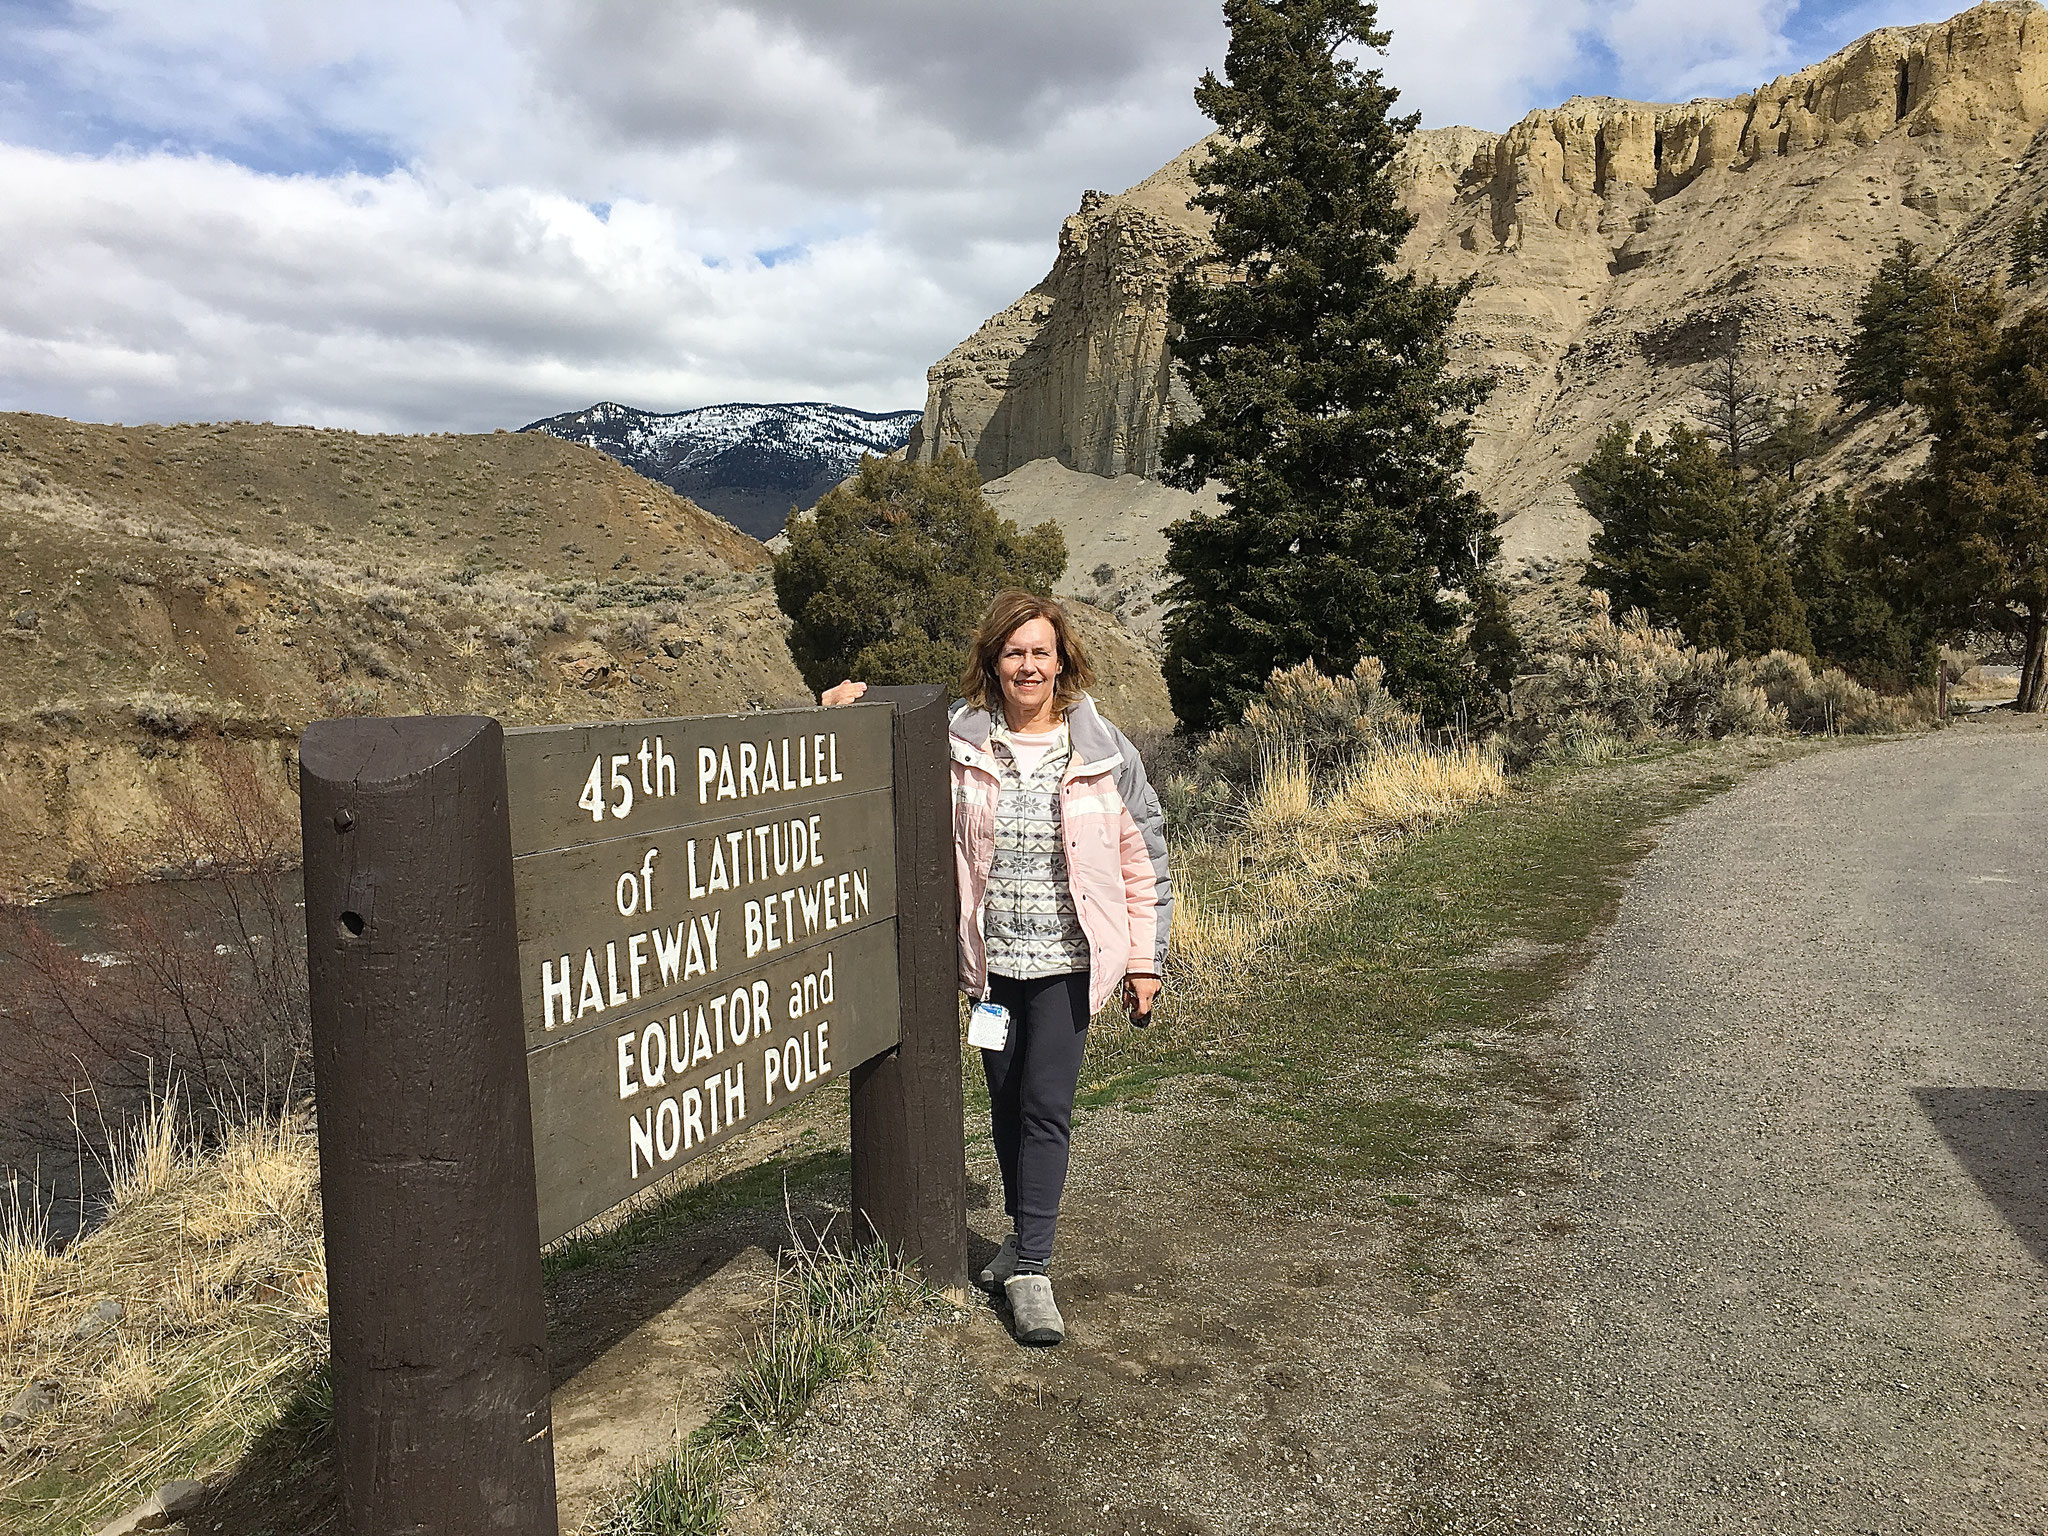 Lorraine in Yellowstone Park, March 2017